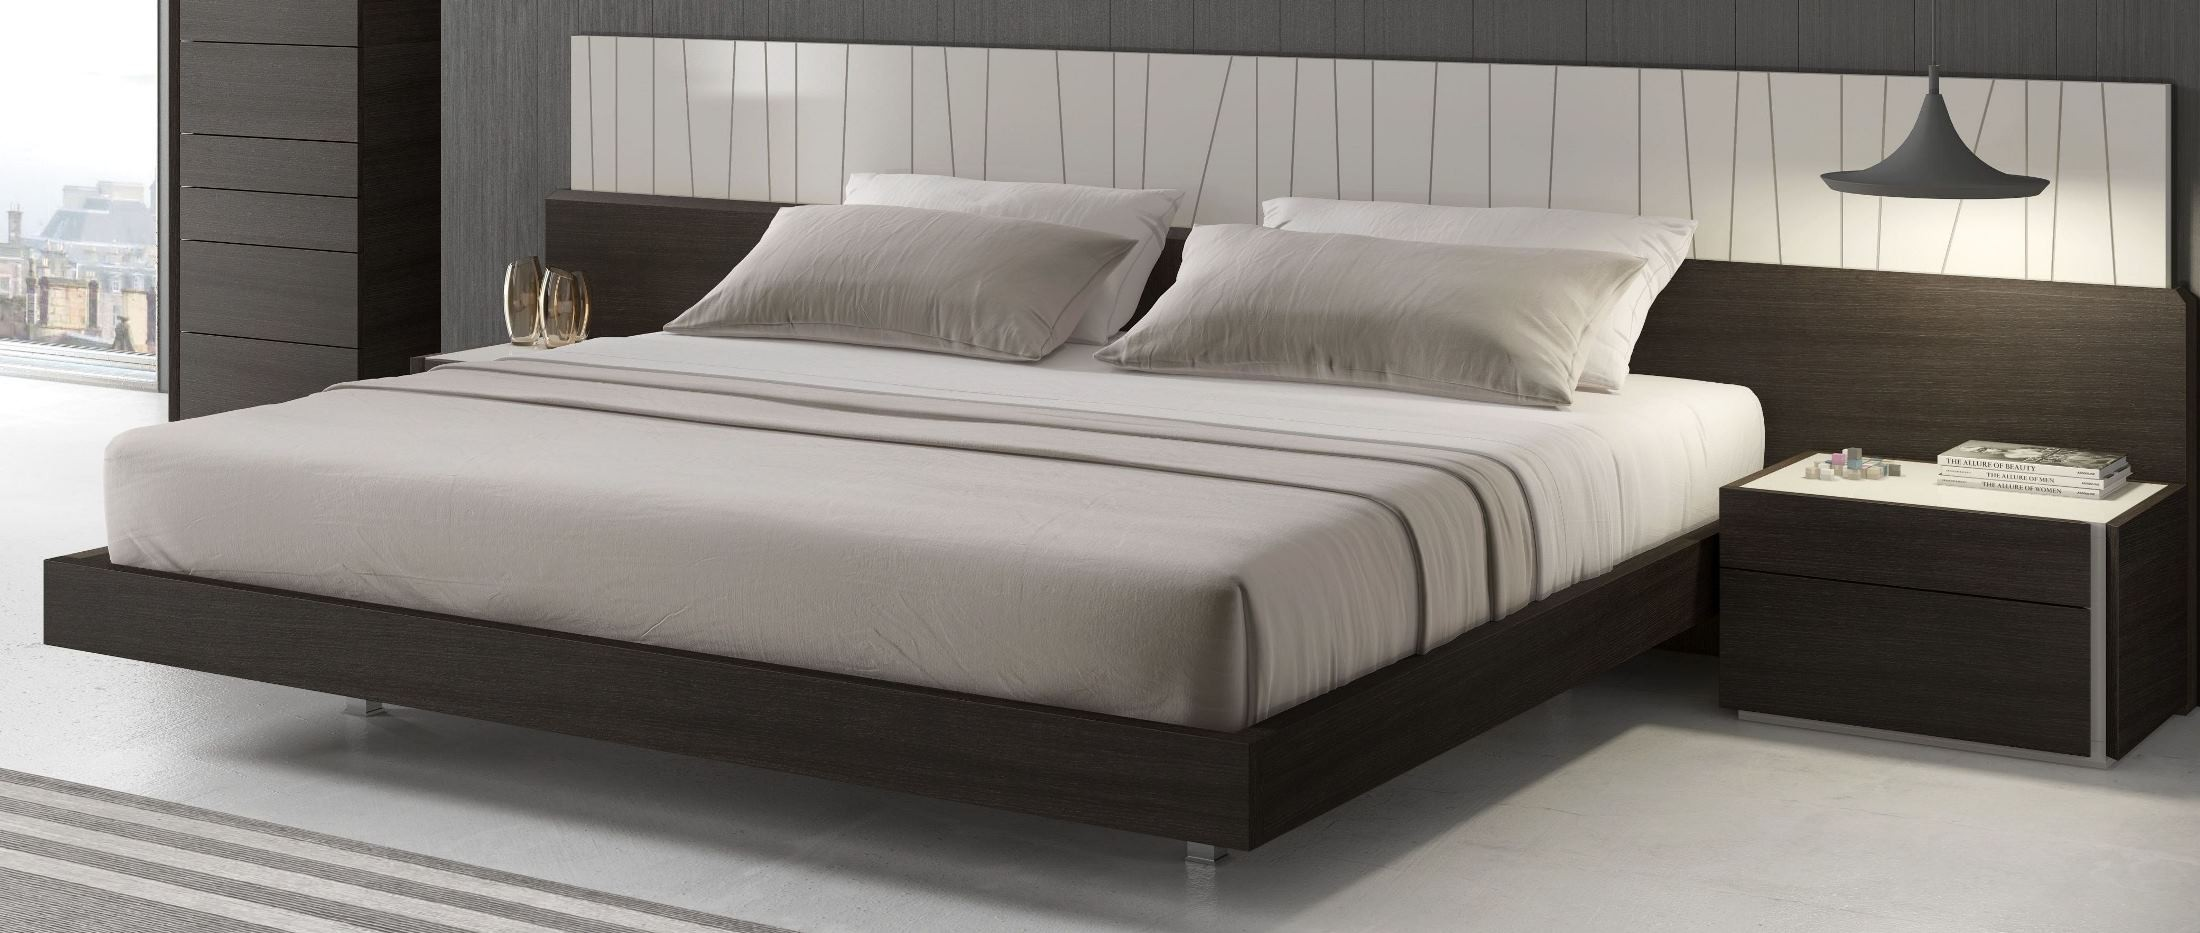 Porto Natural Light Grey Lacquer King Platform Bed from J ...